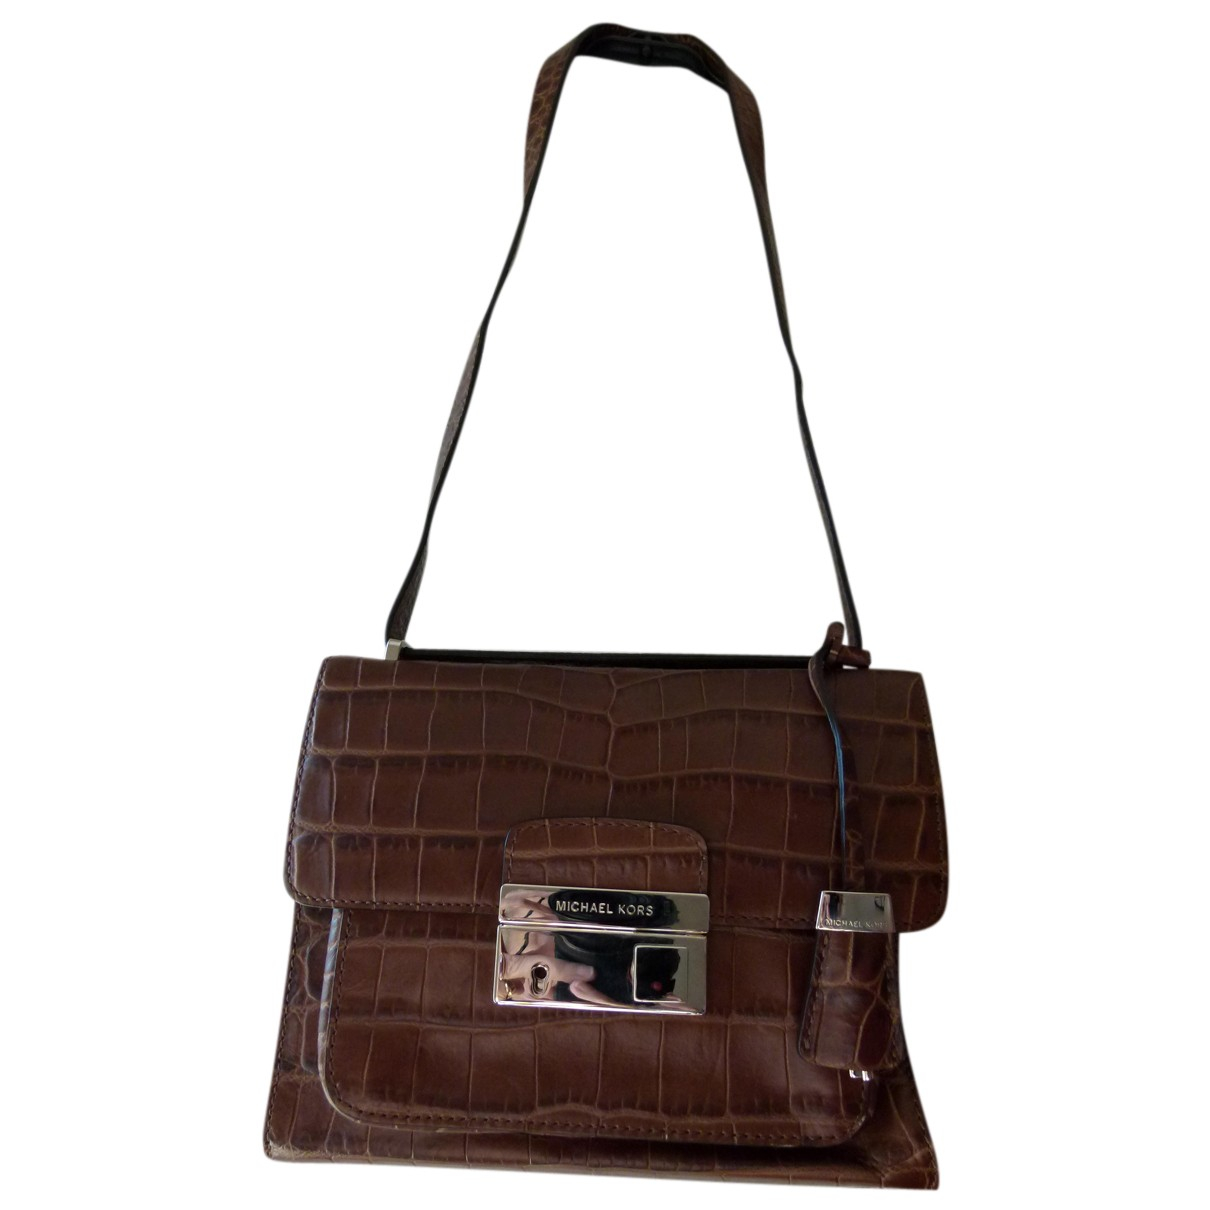 Michael Kors N Brown Leather handbag for Women N